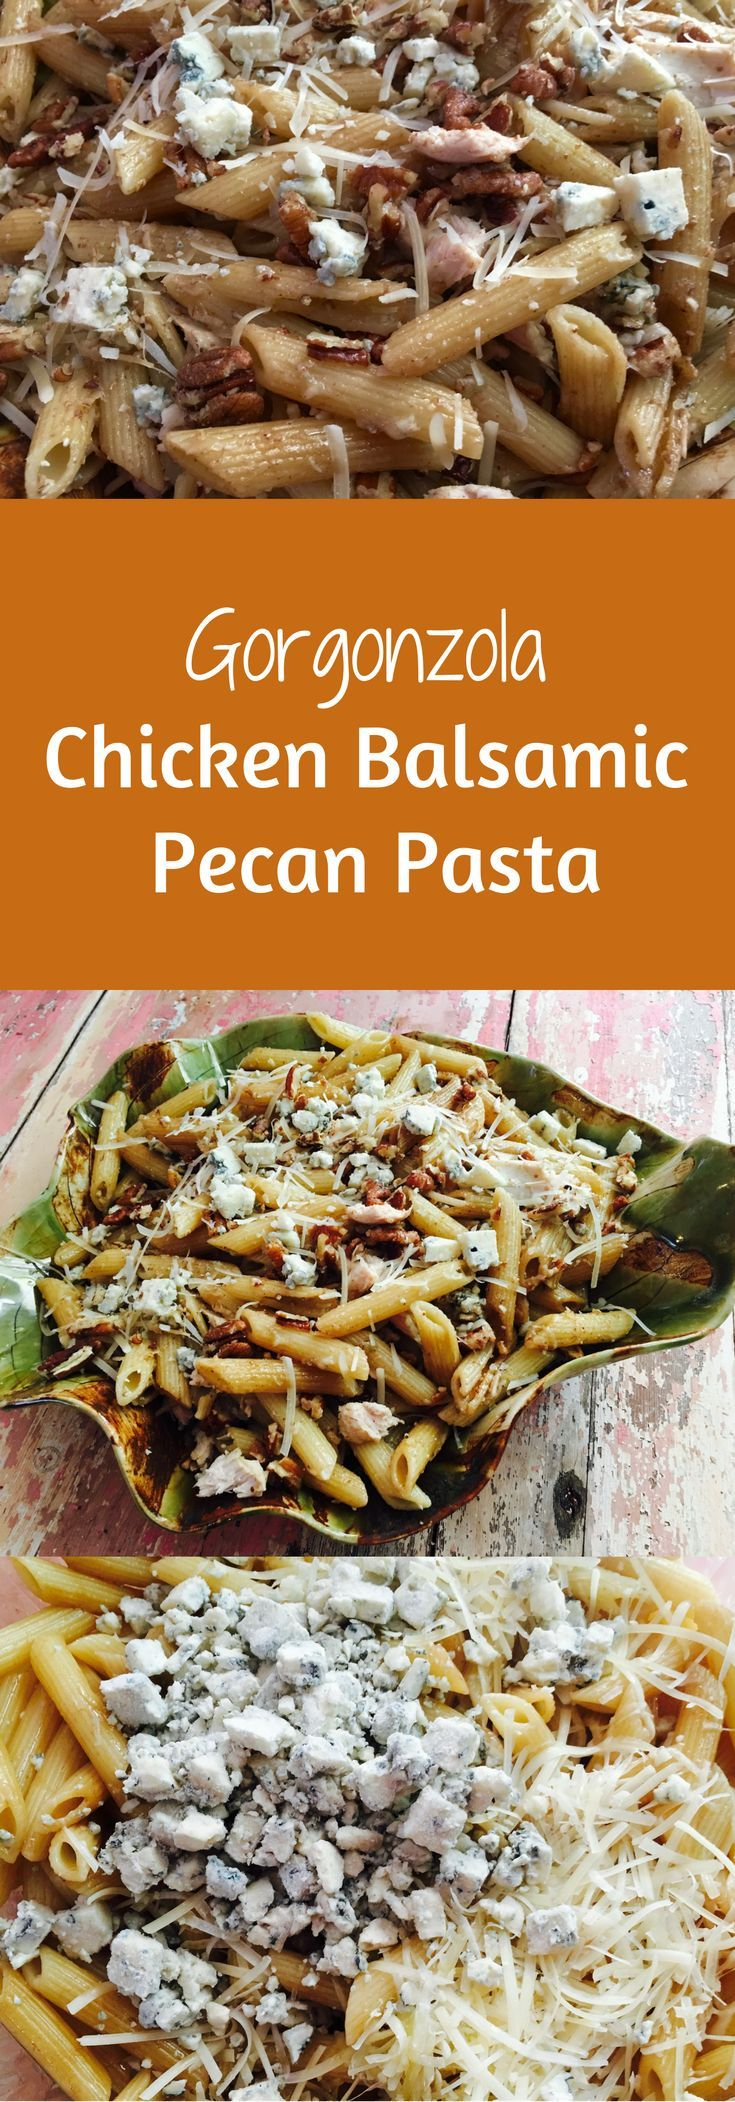 Gorgonzola Chicken Balsamic Pecan Pasta Recipe - Mouthwatering cheesy pasta recipe that everyone will love!